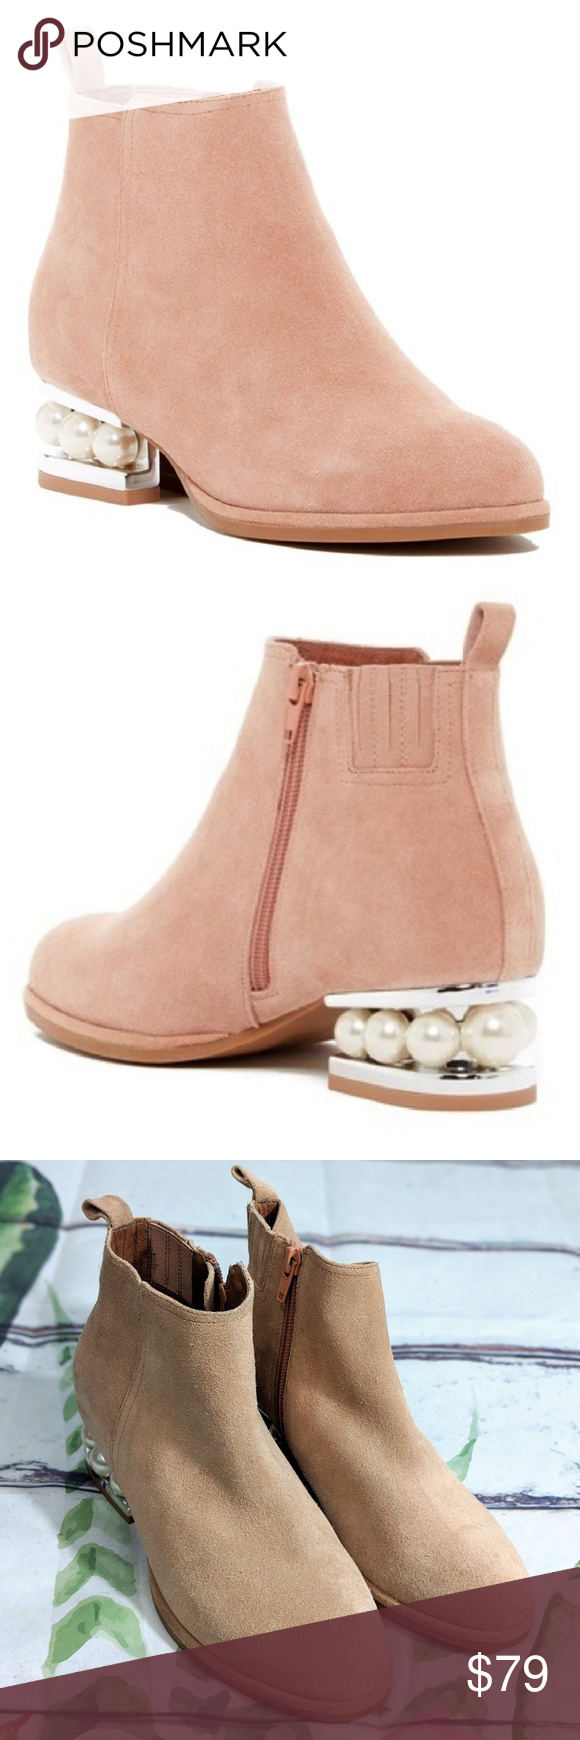 312bce0c3ac Jeffrey Campbell Orlando Pearl Booties Boots 5.5 Jeffrey Campbell Orlando  suede blush nude pearl embellished silver block heel. Rare smaller size!!